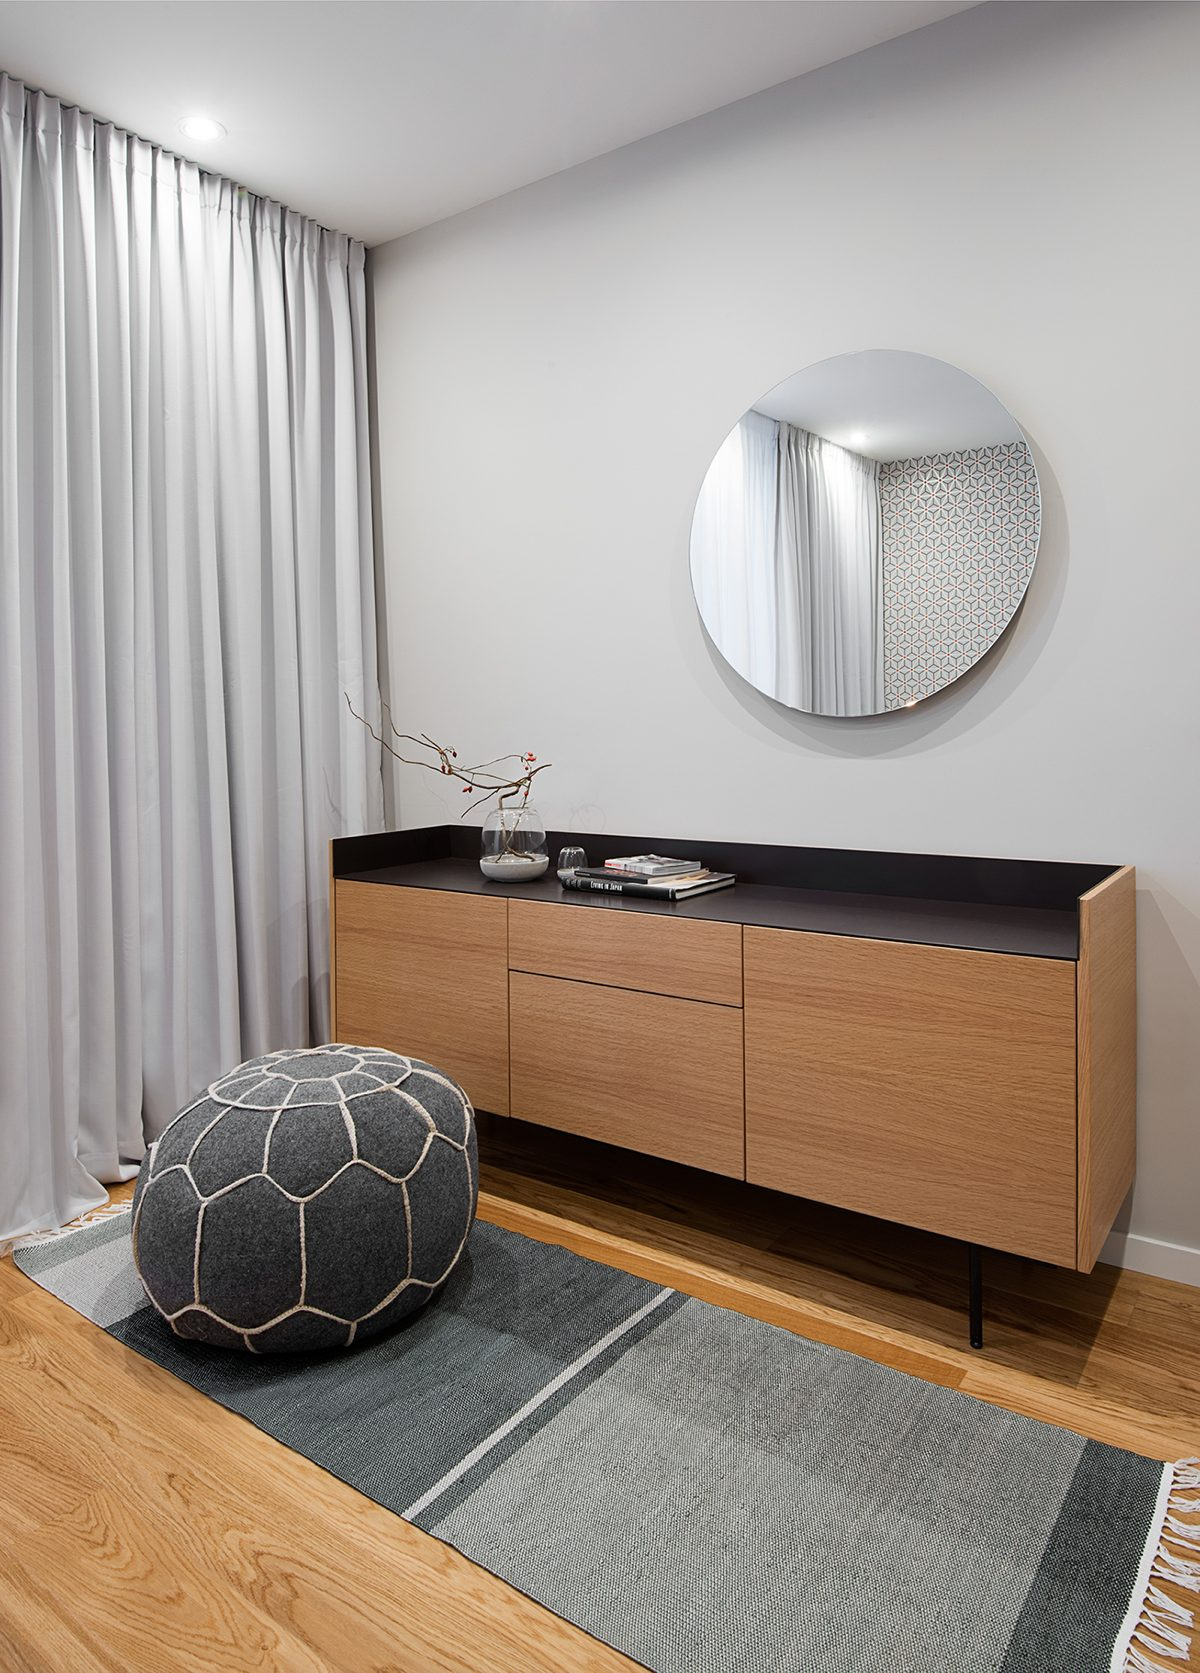 Subtle Geometric Bedroom Design - A mid century inspired apartment with modern geometric accents